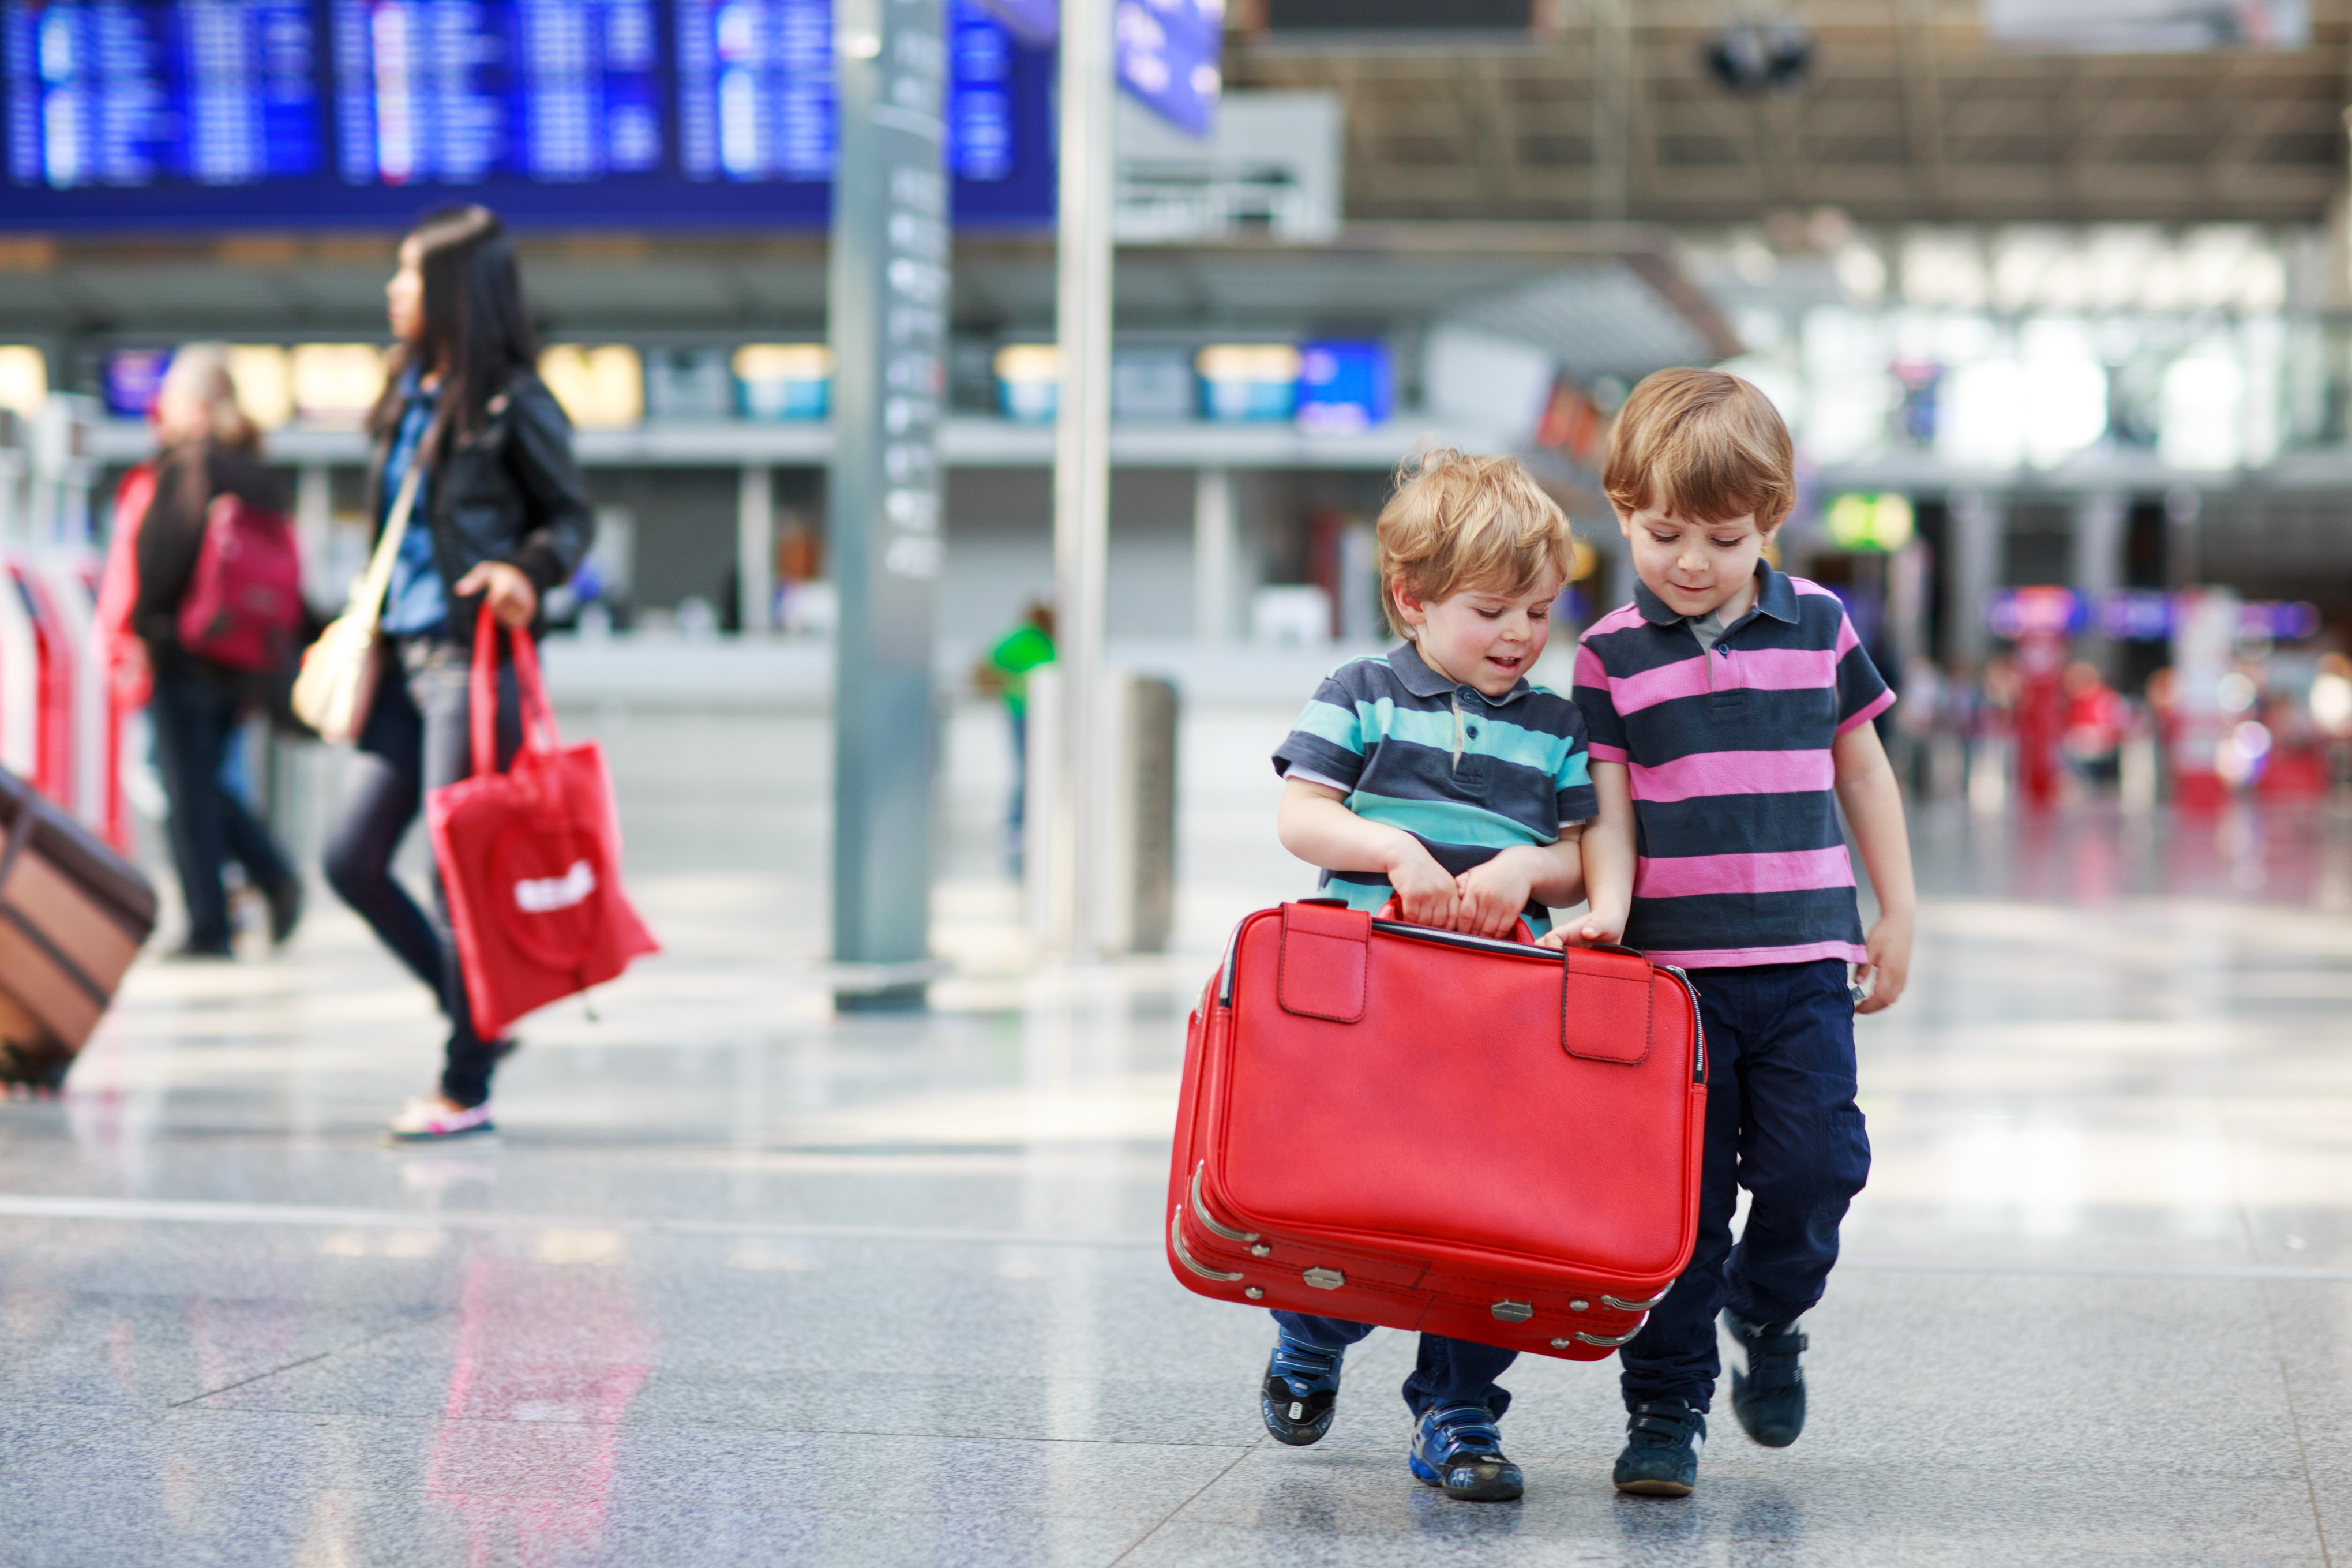 Young boys with red suitcase